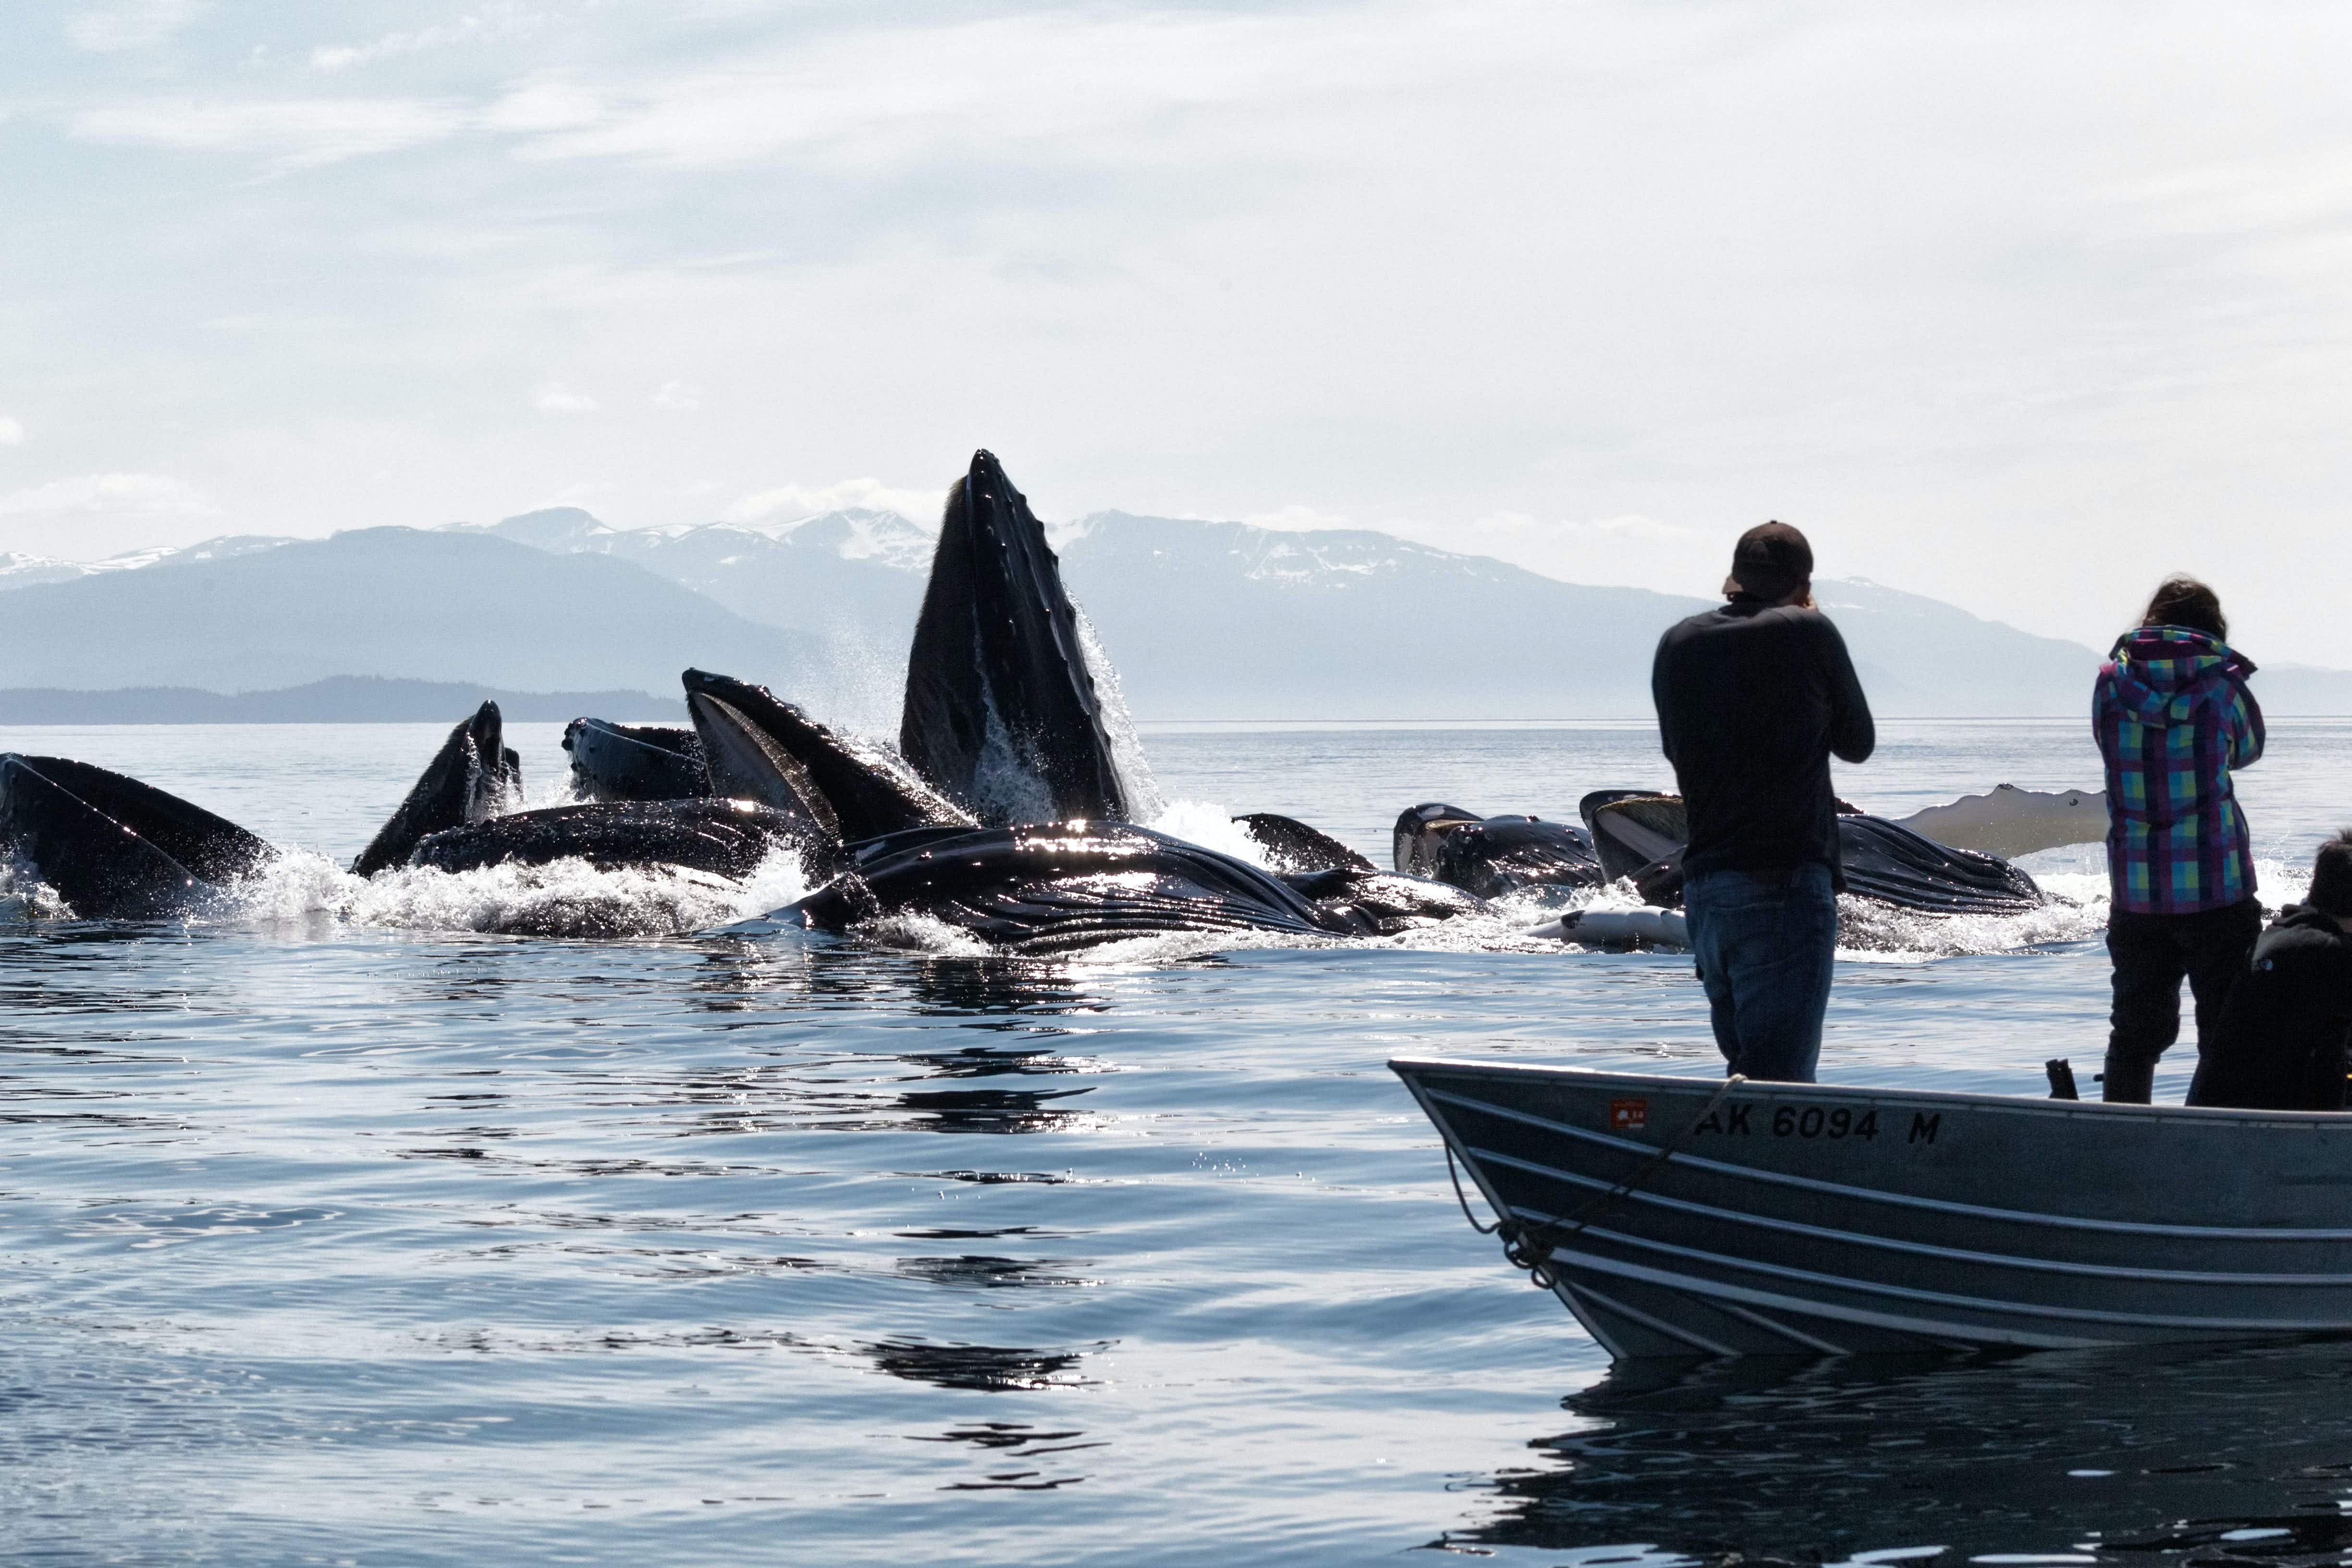 See humpback whales captured by nature photographer emerging from water to feed in the Pacific